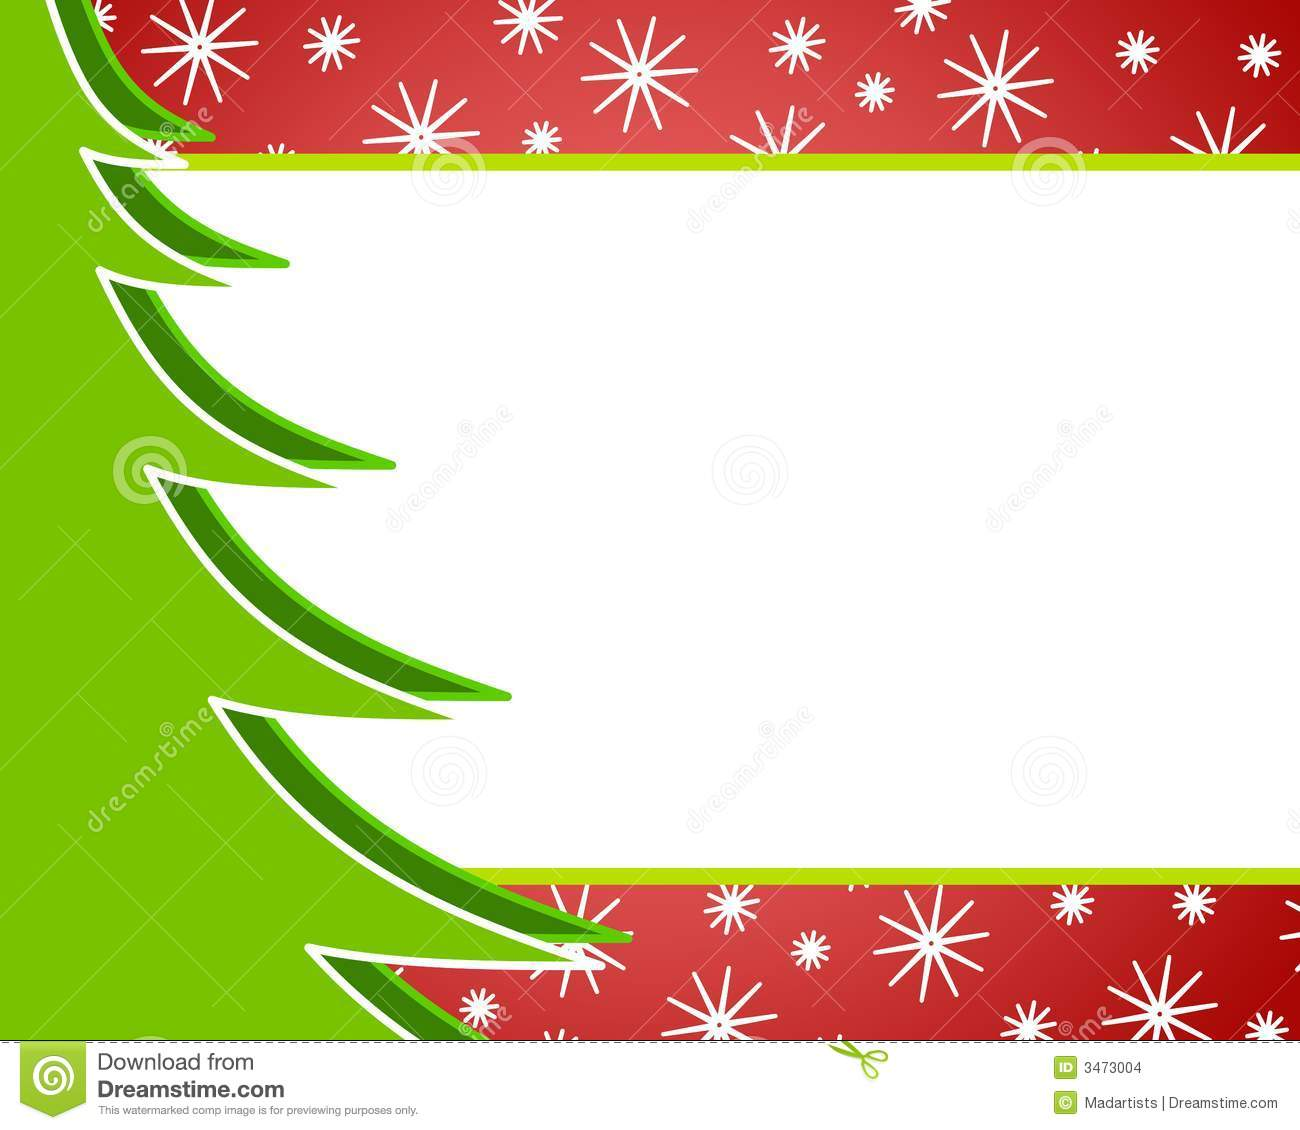 Christmas background images clipart image royalty free Christmas Clipart With No Background | Free download best Christmas ... image royalty free